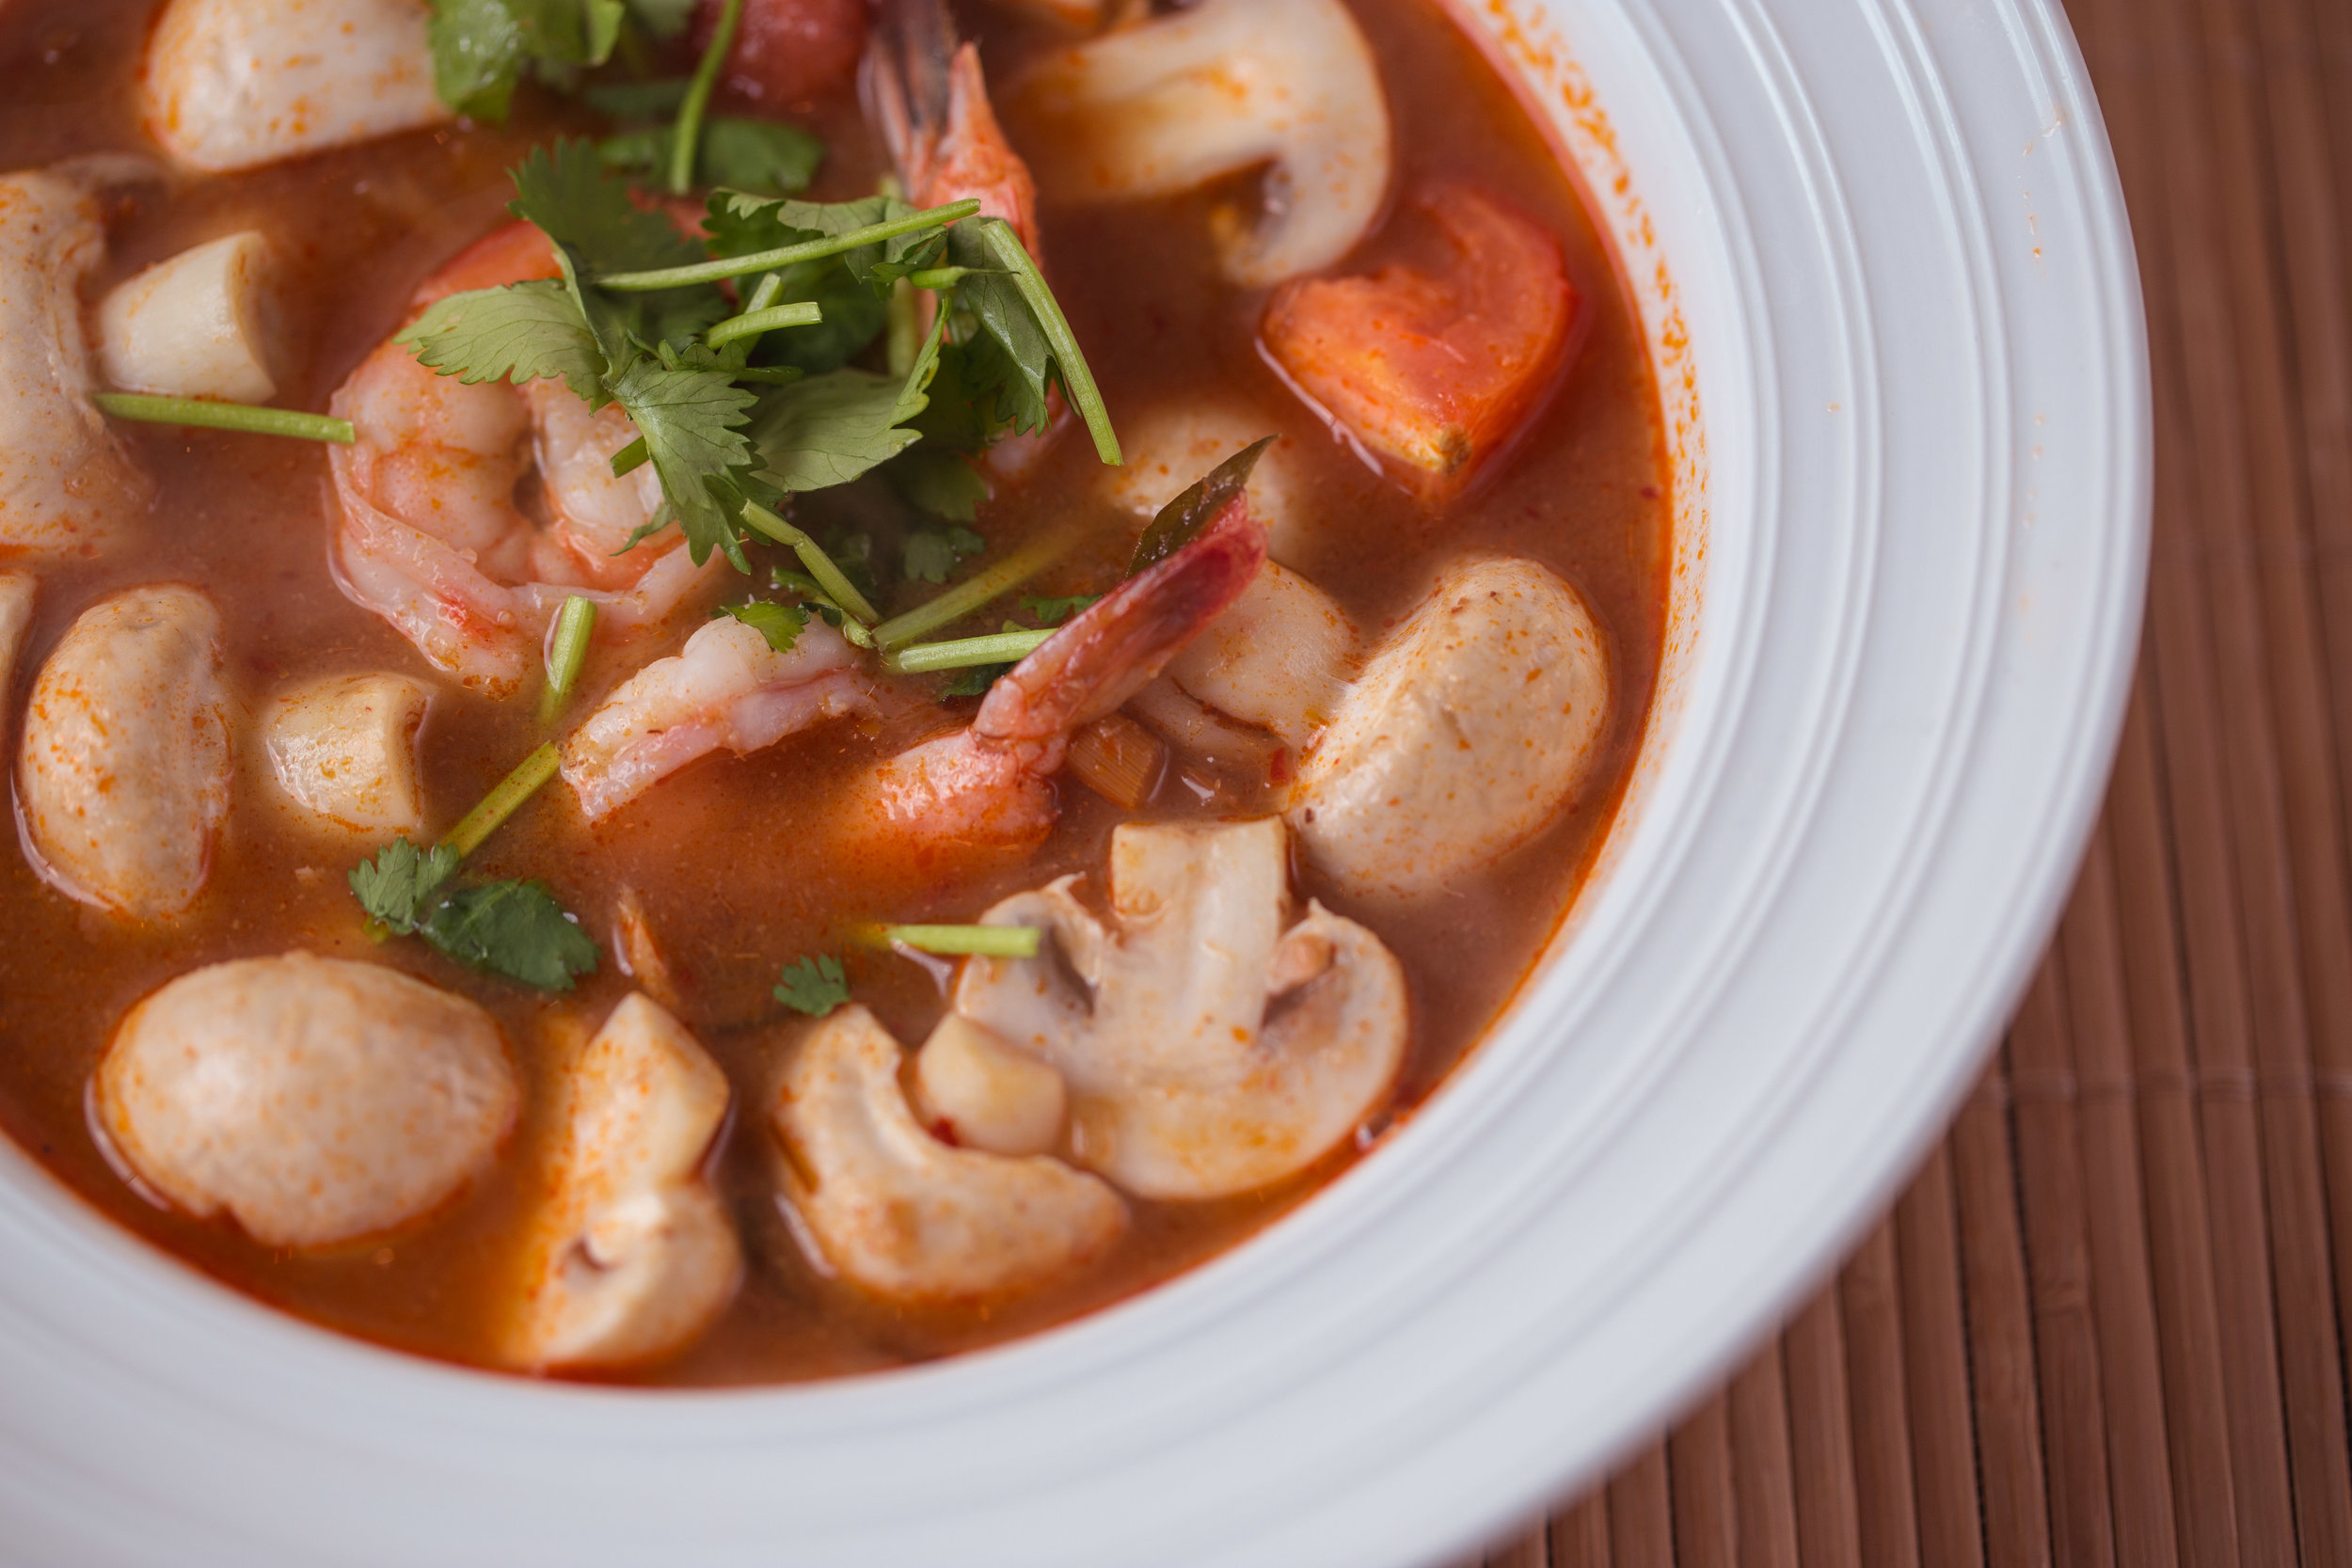 S2. Tom Yum Goong (Hot & Sour Soup)